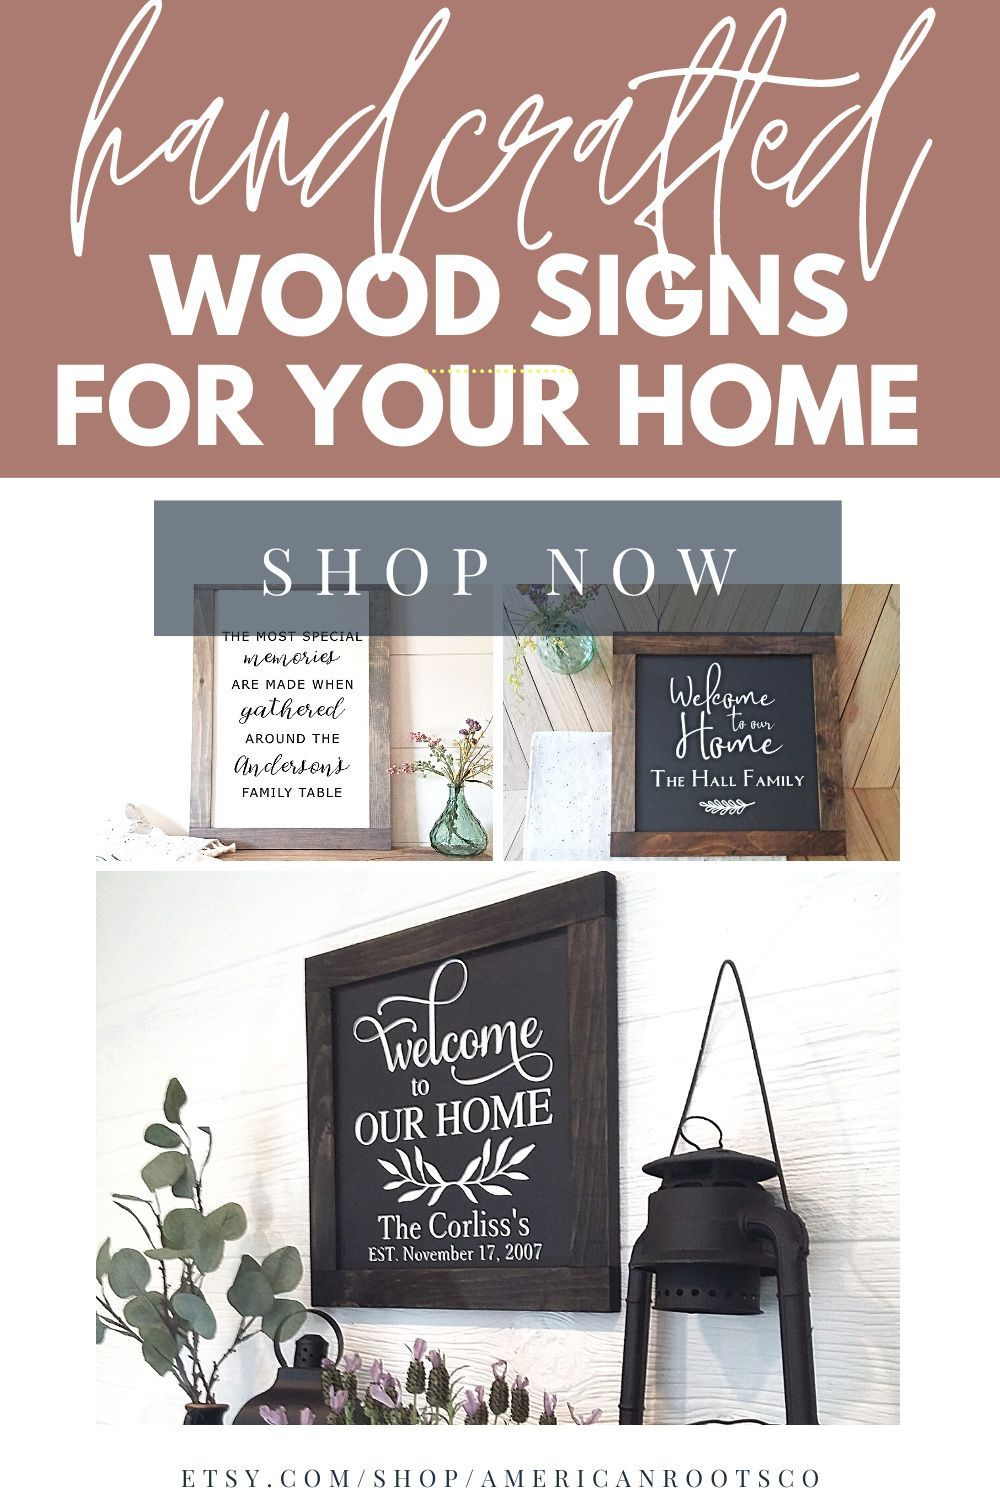 Customize your own wood sign on Etsy at American Roots Co. Get 10% off your first order. Customize your walls -->> SHOP NOW! #woodsigns #customsigns #welcomesigns #entrywaysigns